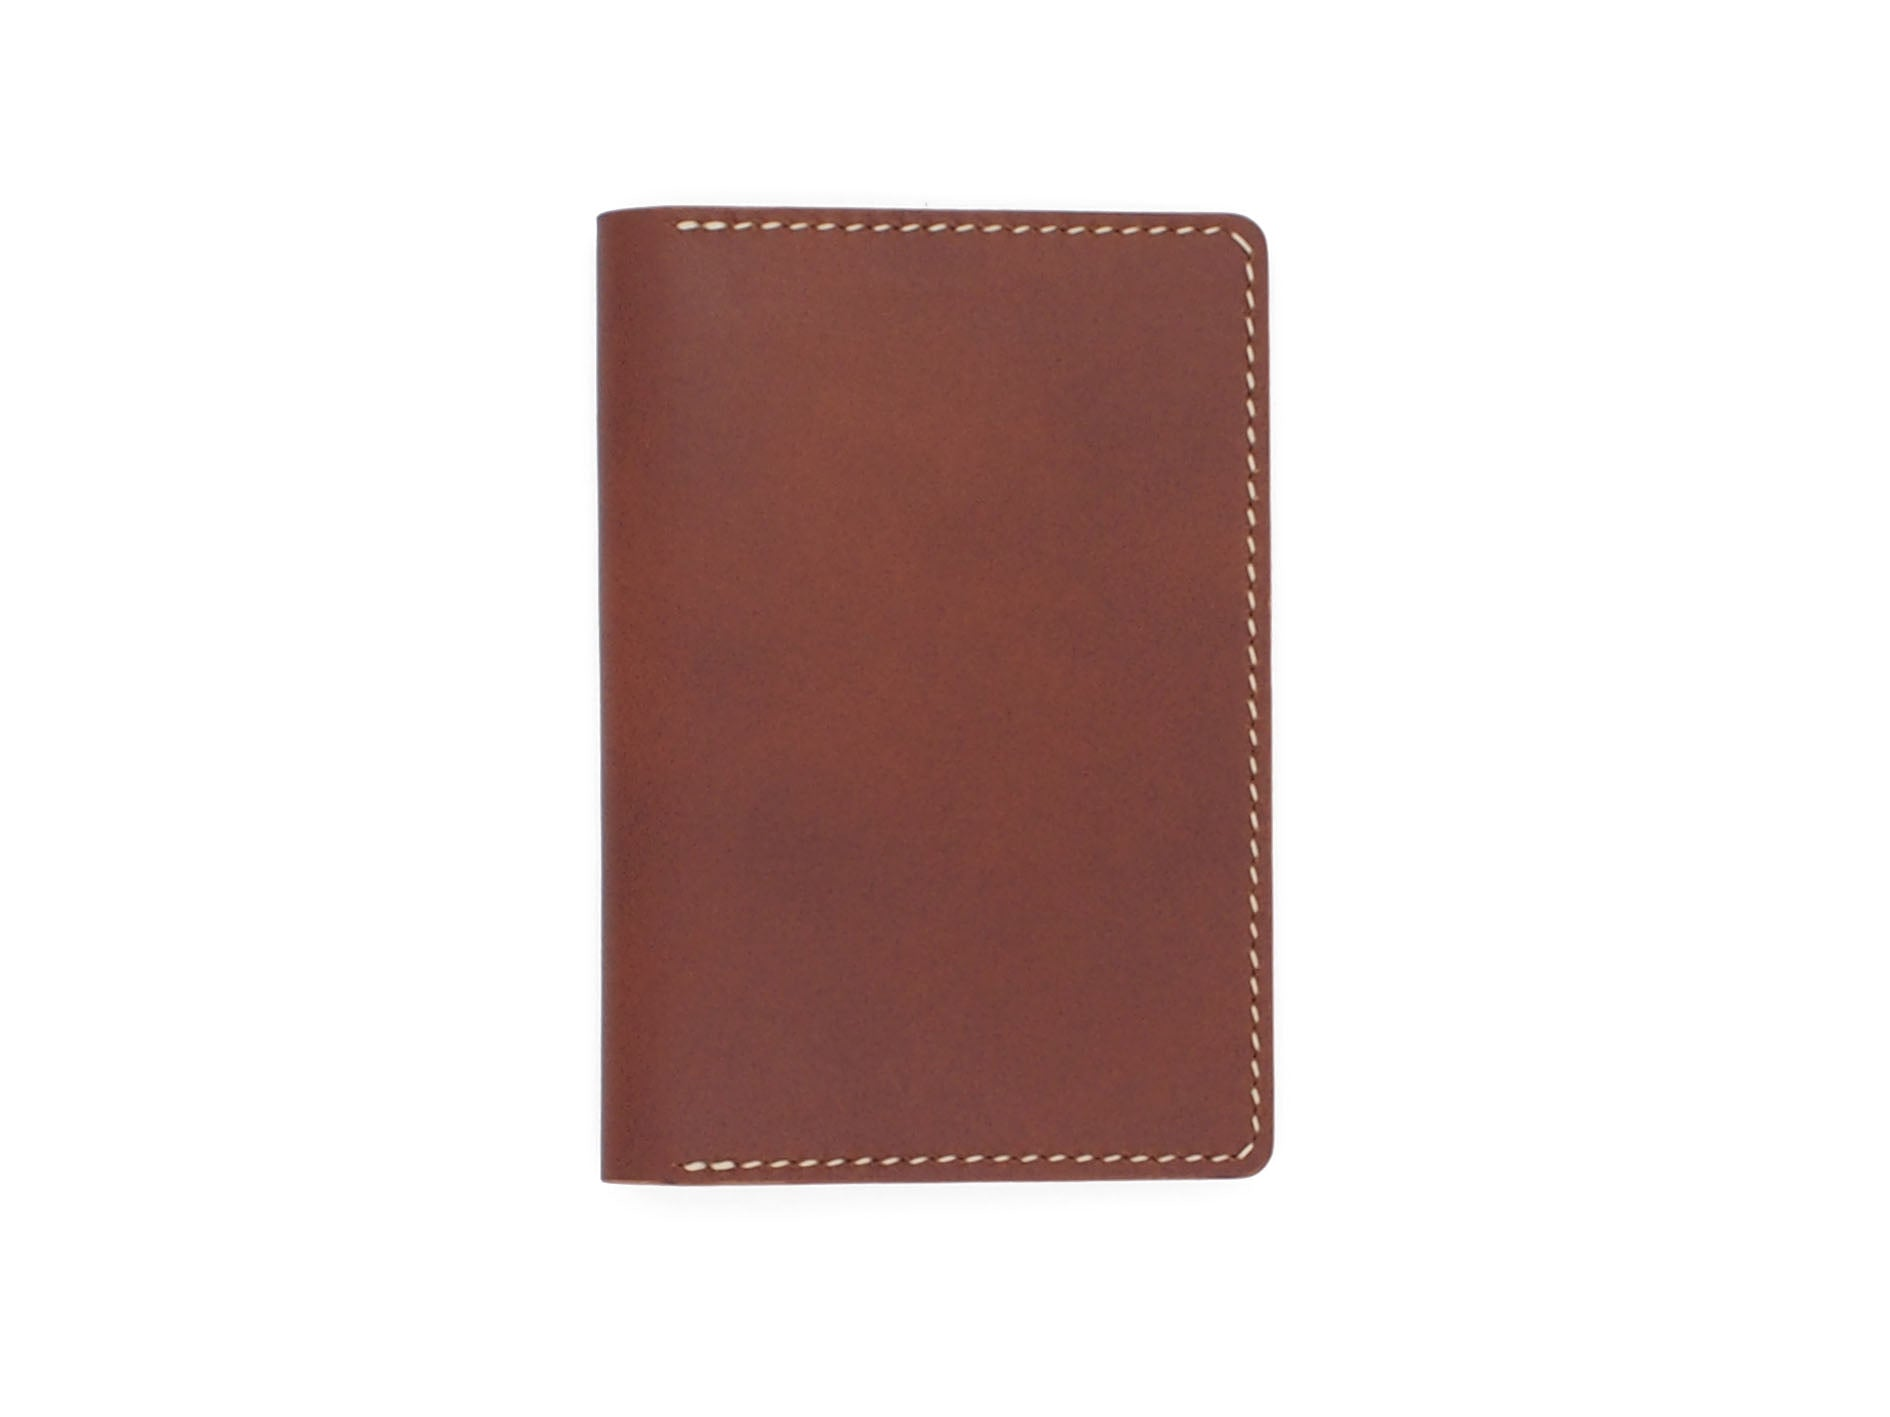 Nomad Mk.2 Passport Holder In Whiskey Buttero